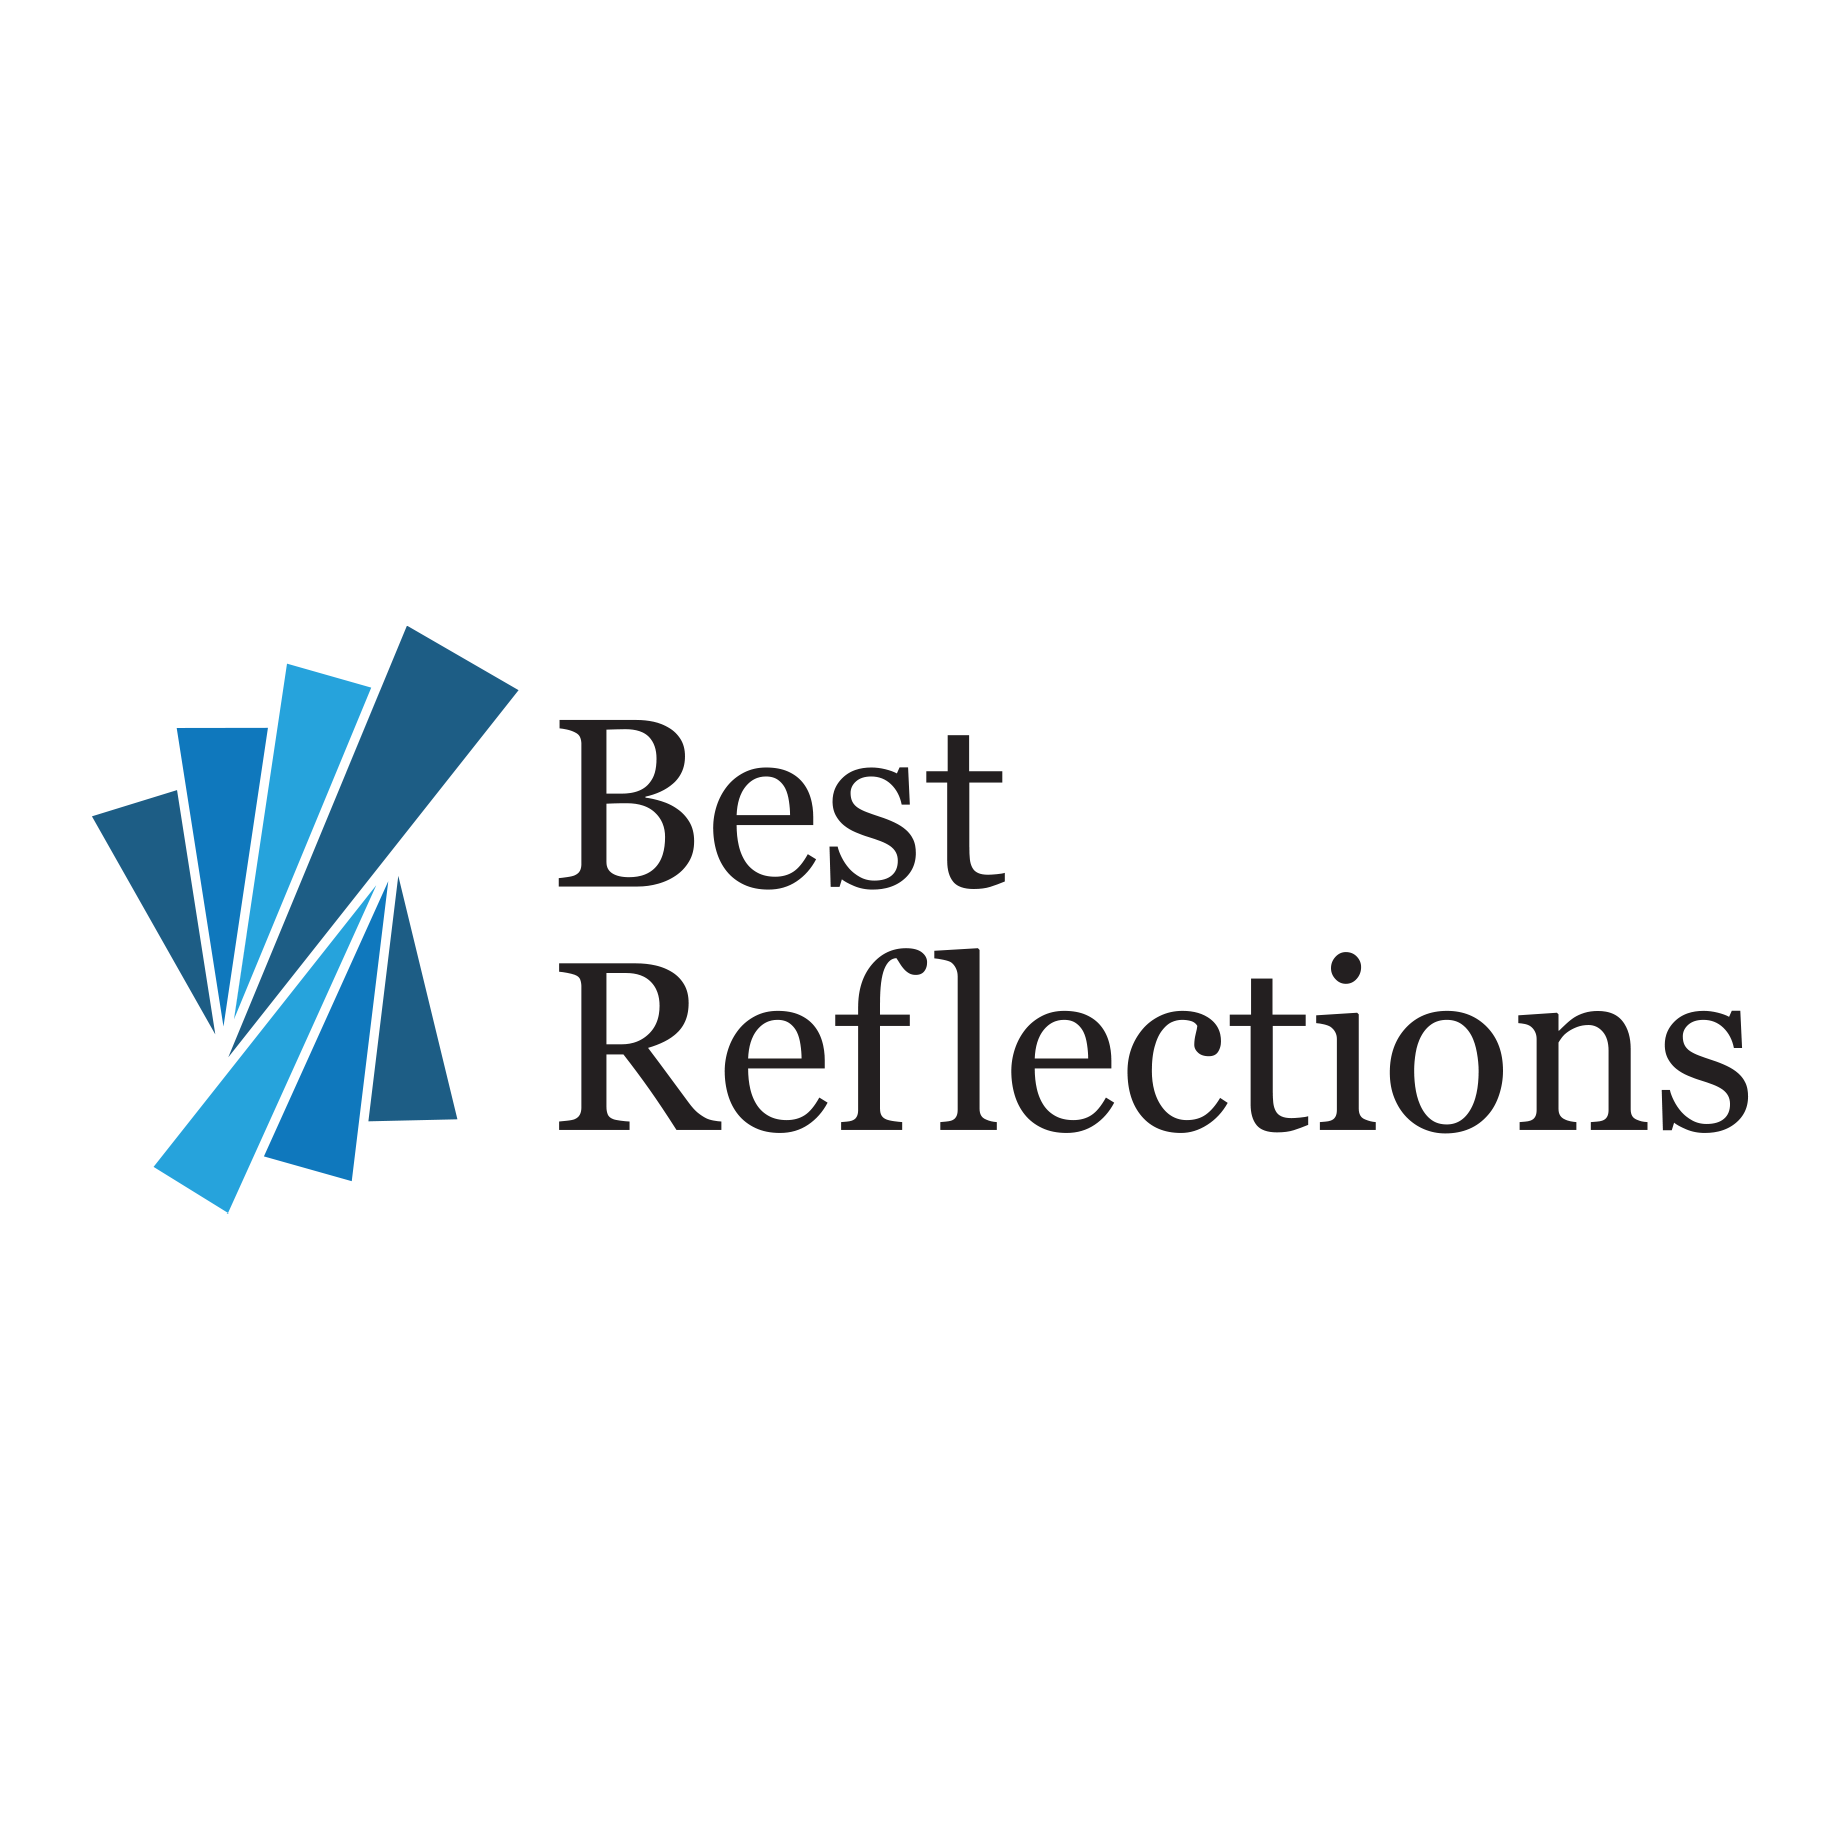 Best Reflections